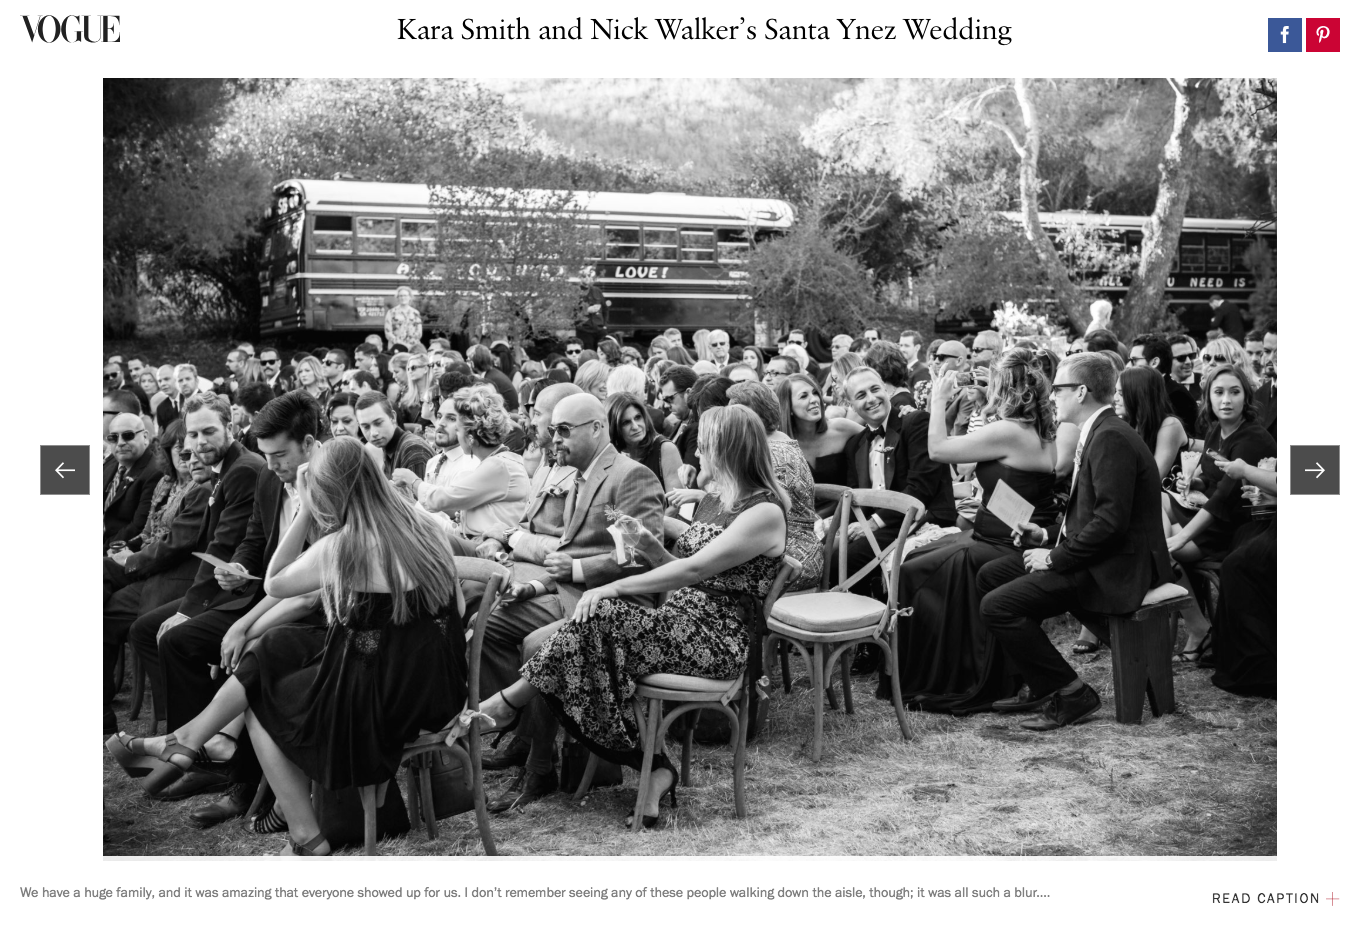 Jump On The School Bus Featured in Vogue | Photo Cred: Pat Martin and M. Corey Witted